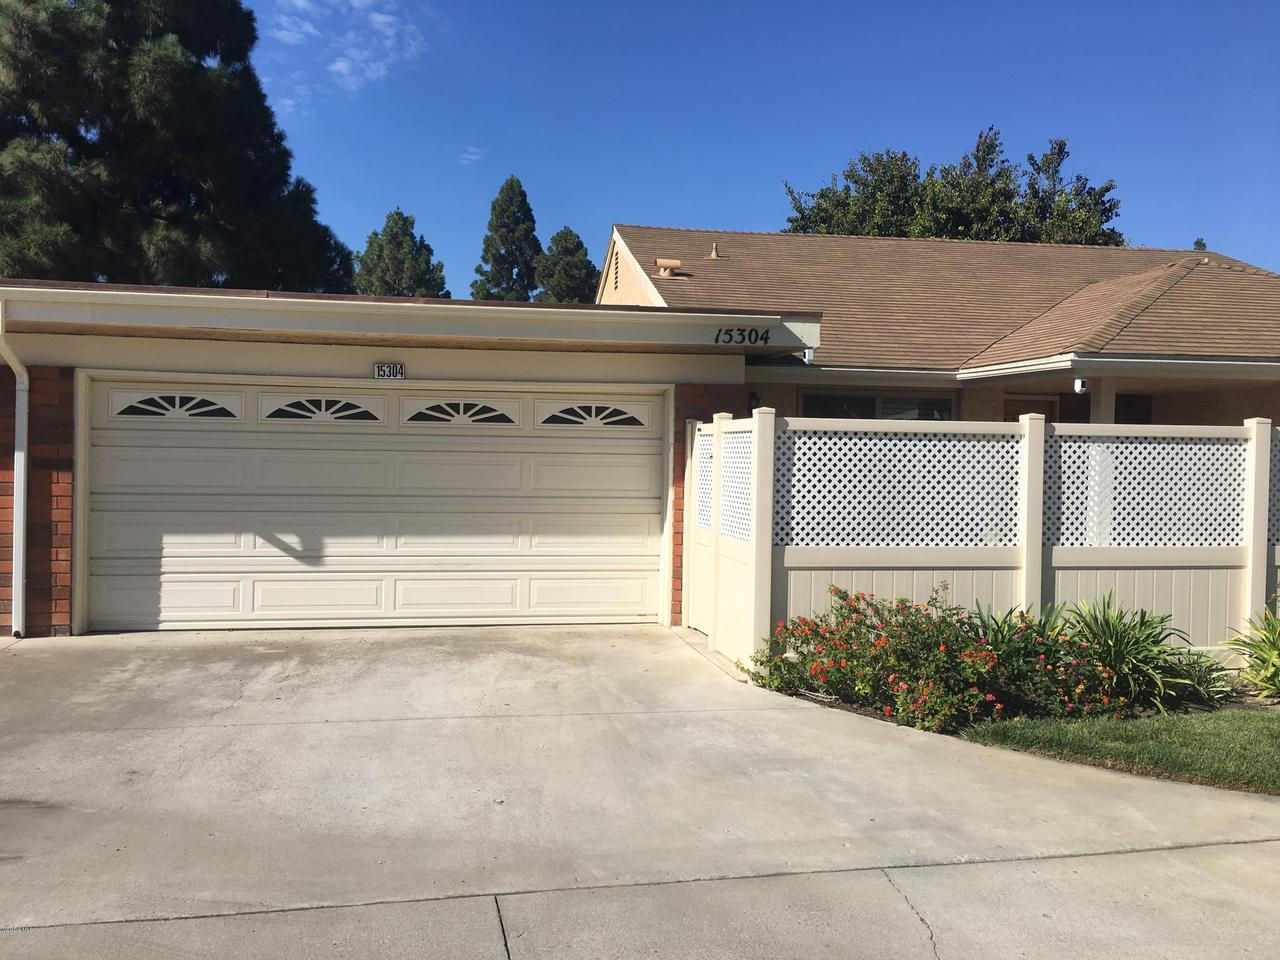 Photo of 15304 VILLAGE 15, Camarillo, CA 93012